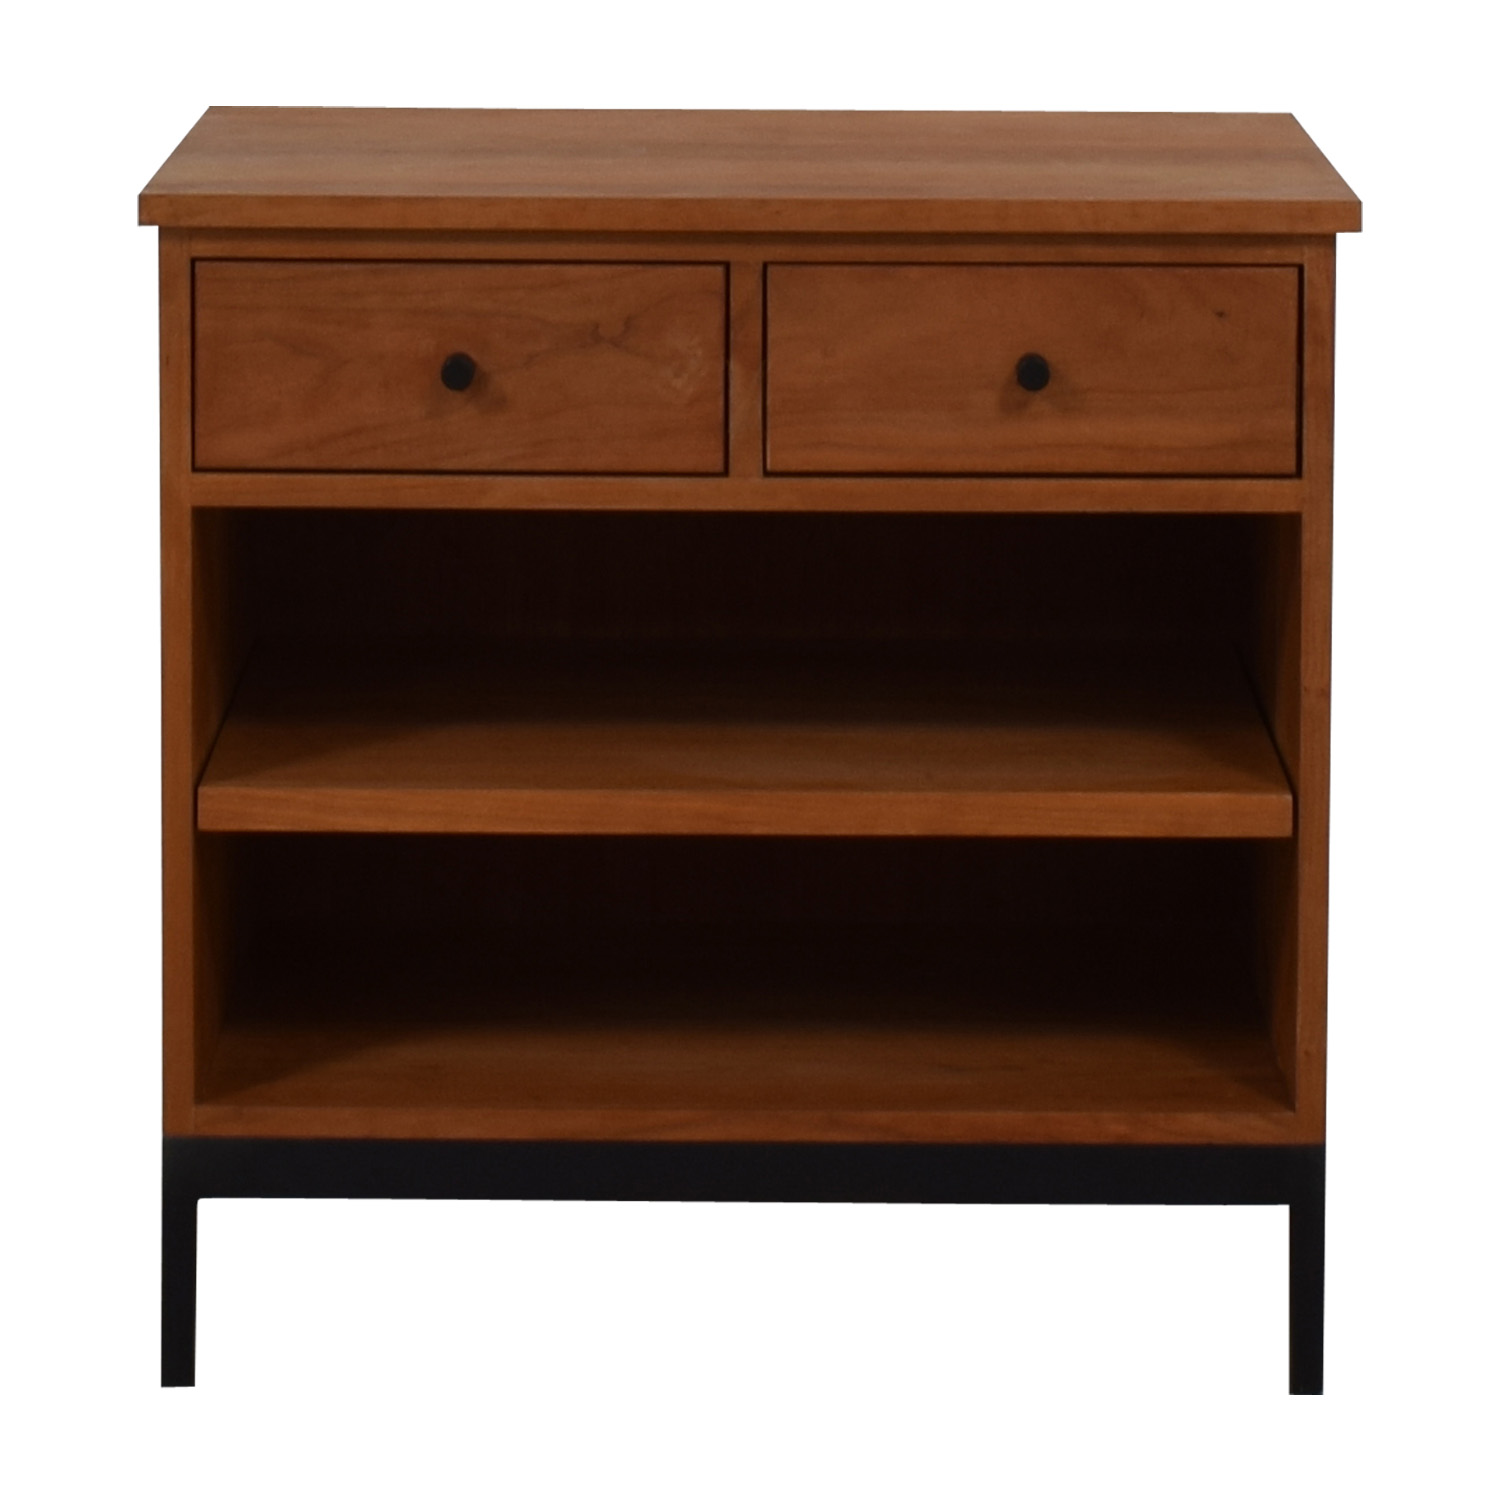 Room & Board Room & Board Double Drawer End Table discount